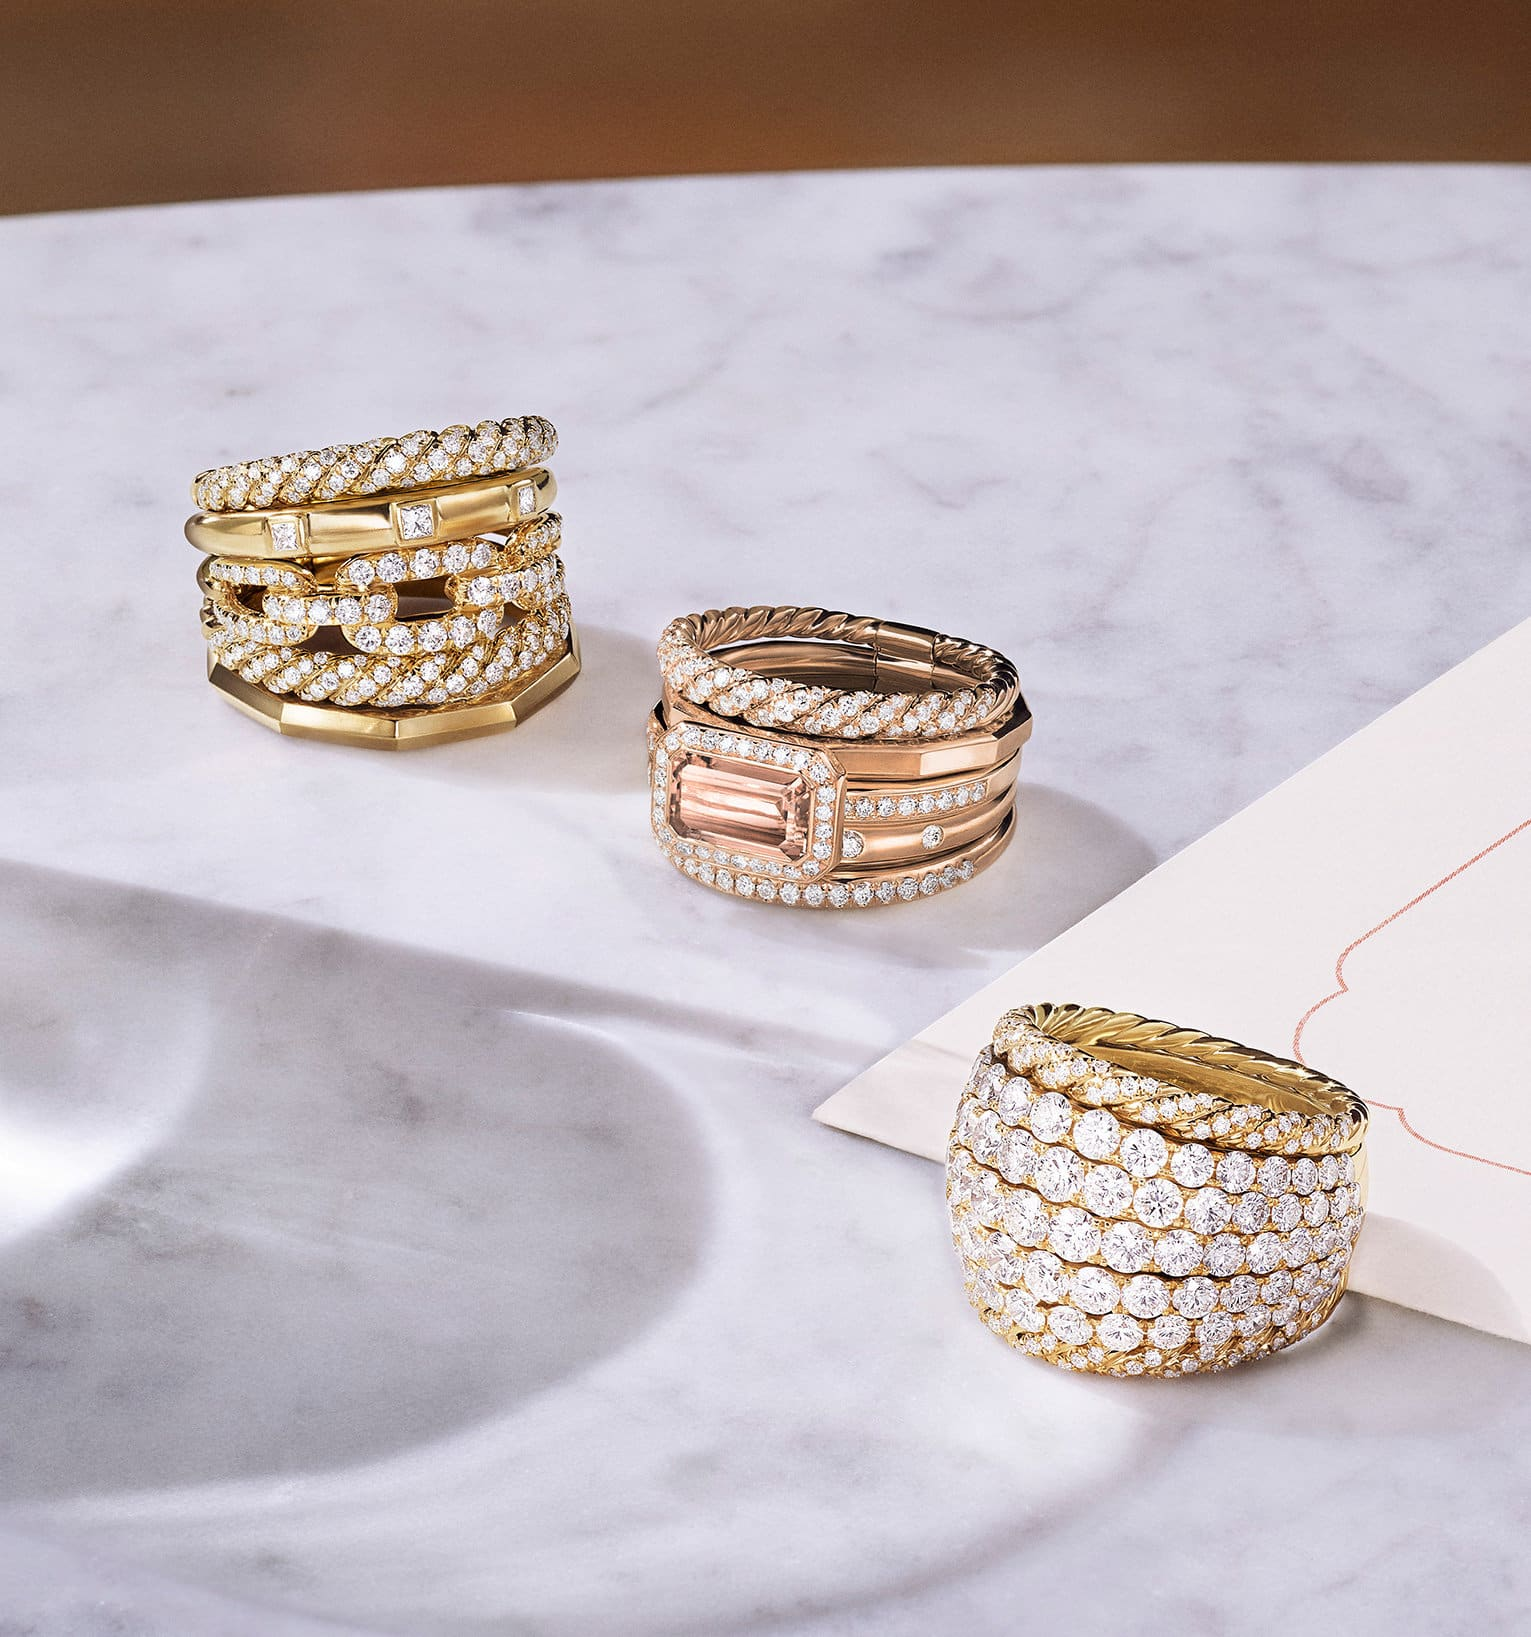 A color photograph shows three David Yurman women's multi-row rings from the Stax and High Jewelry collections scattered on a grey marble surface with soft shadows, a white notecard and a carafe of water. The jewelry is crafted from 18K yellow gold with pavé white diamonds. One ring features an emerald-cut morganite center stone.